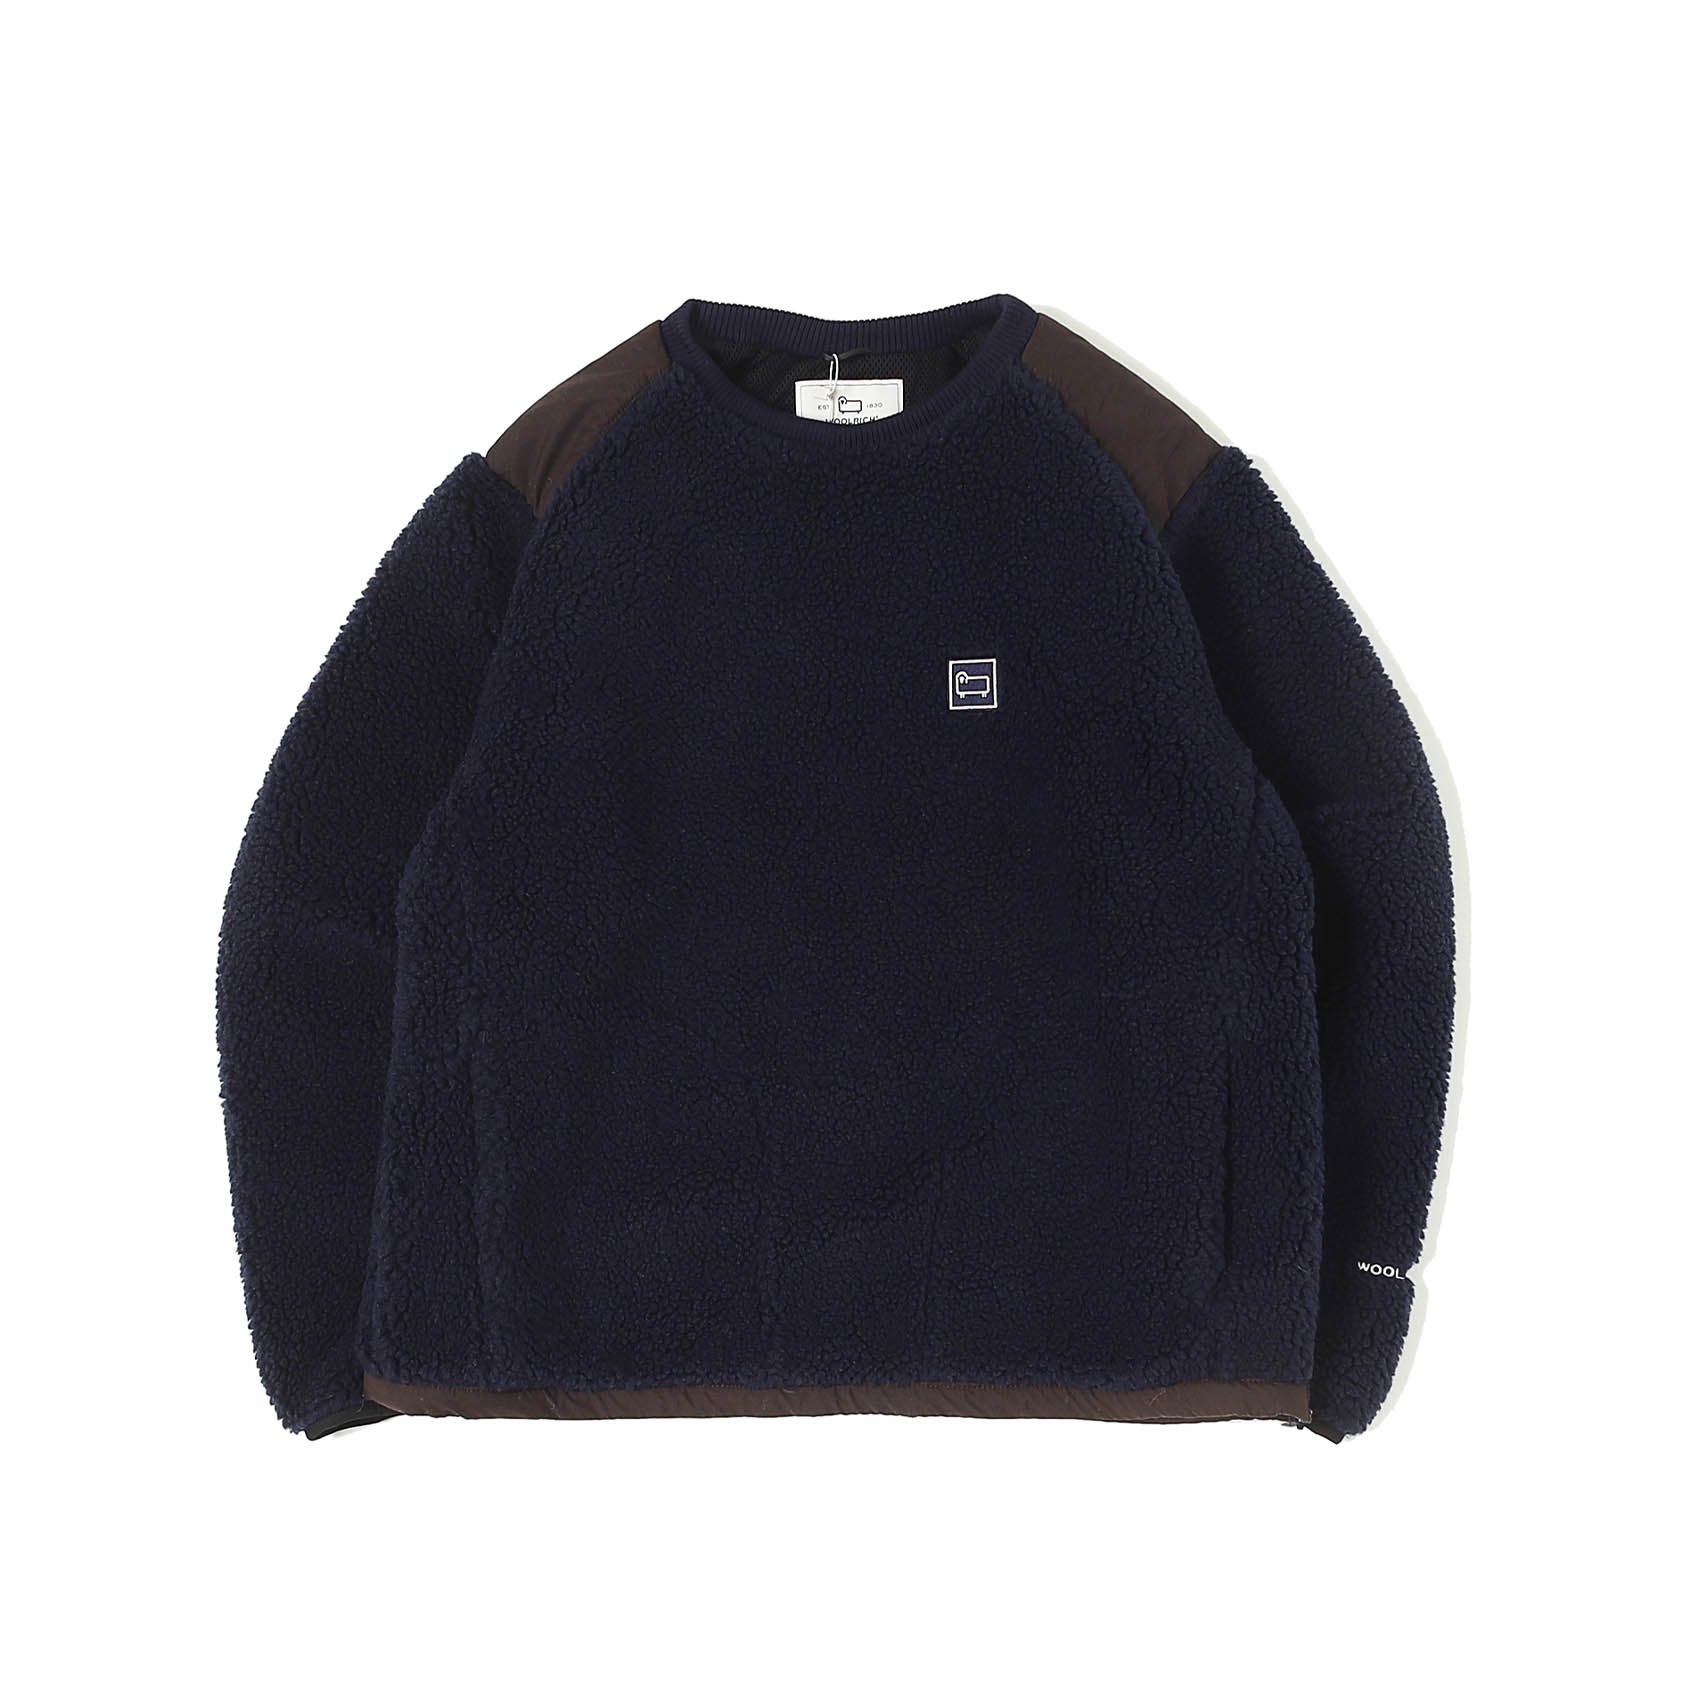 TERRA PILE FLEECE PULLOVER - NAVY